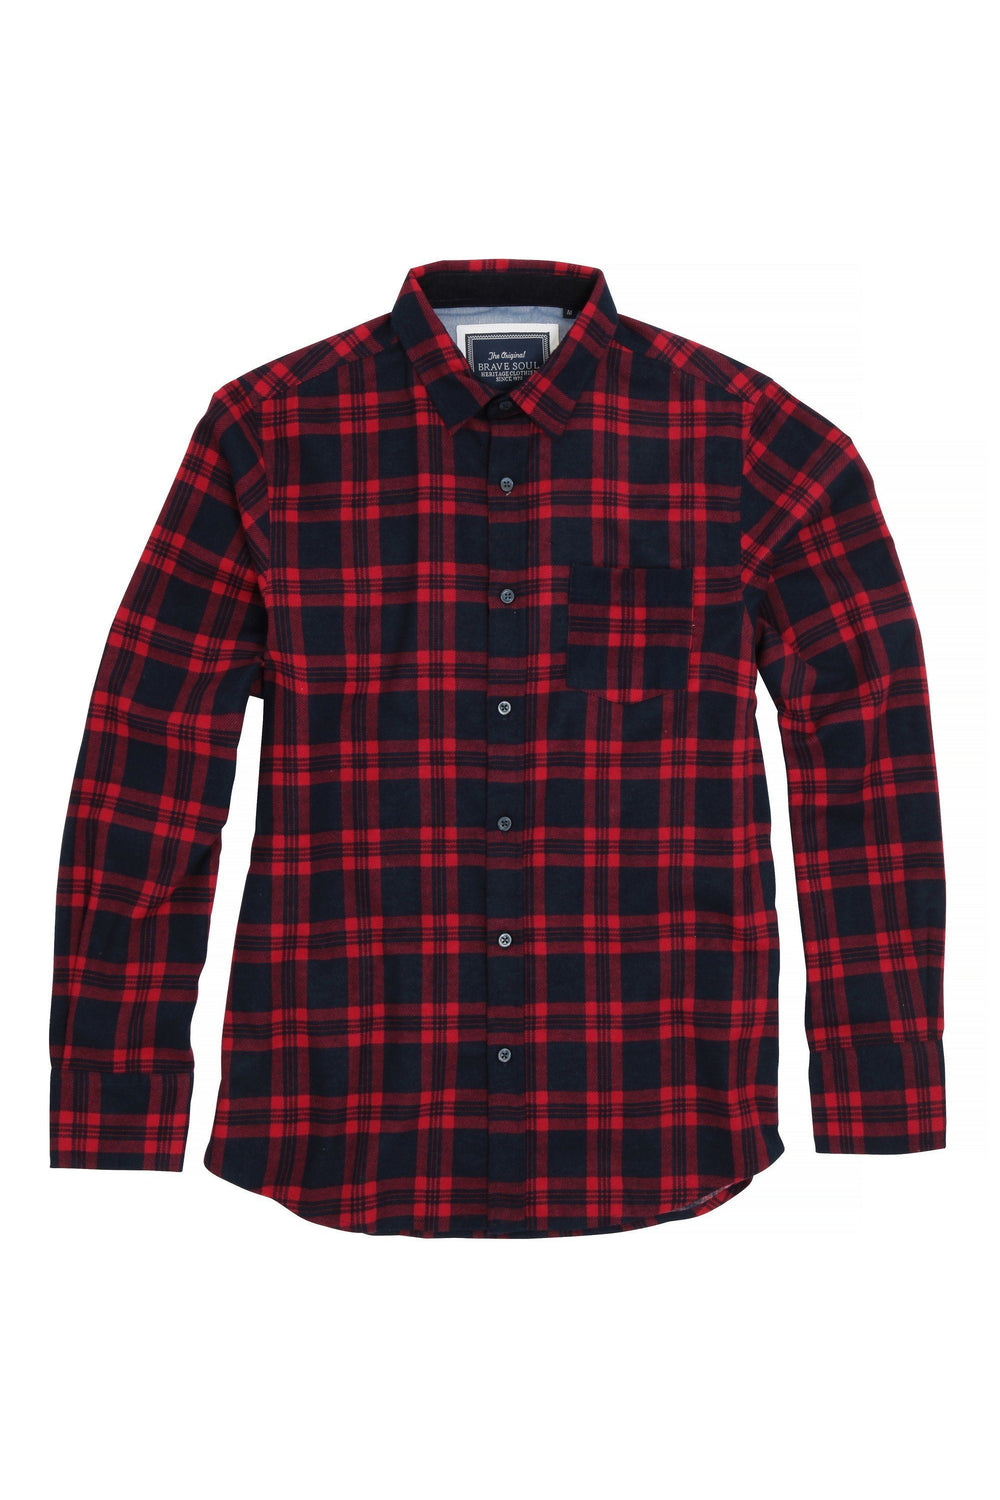 Check Shirt Red/ Navy